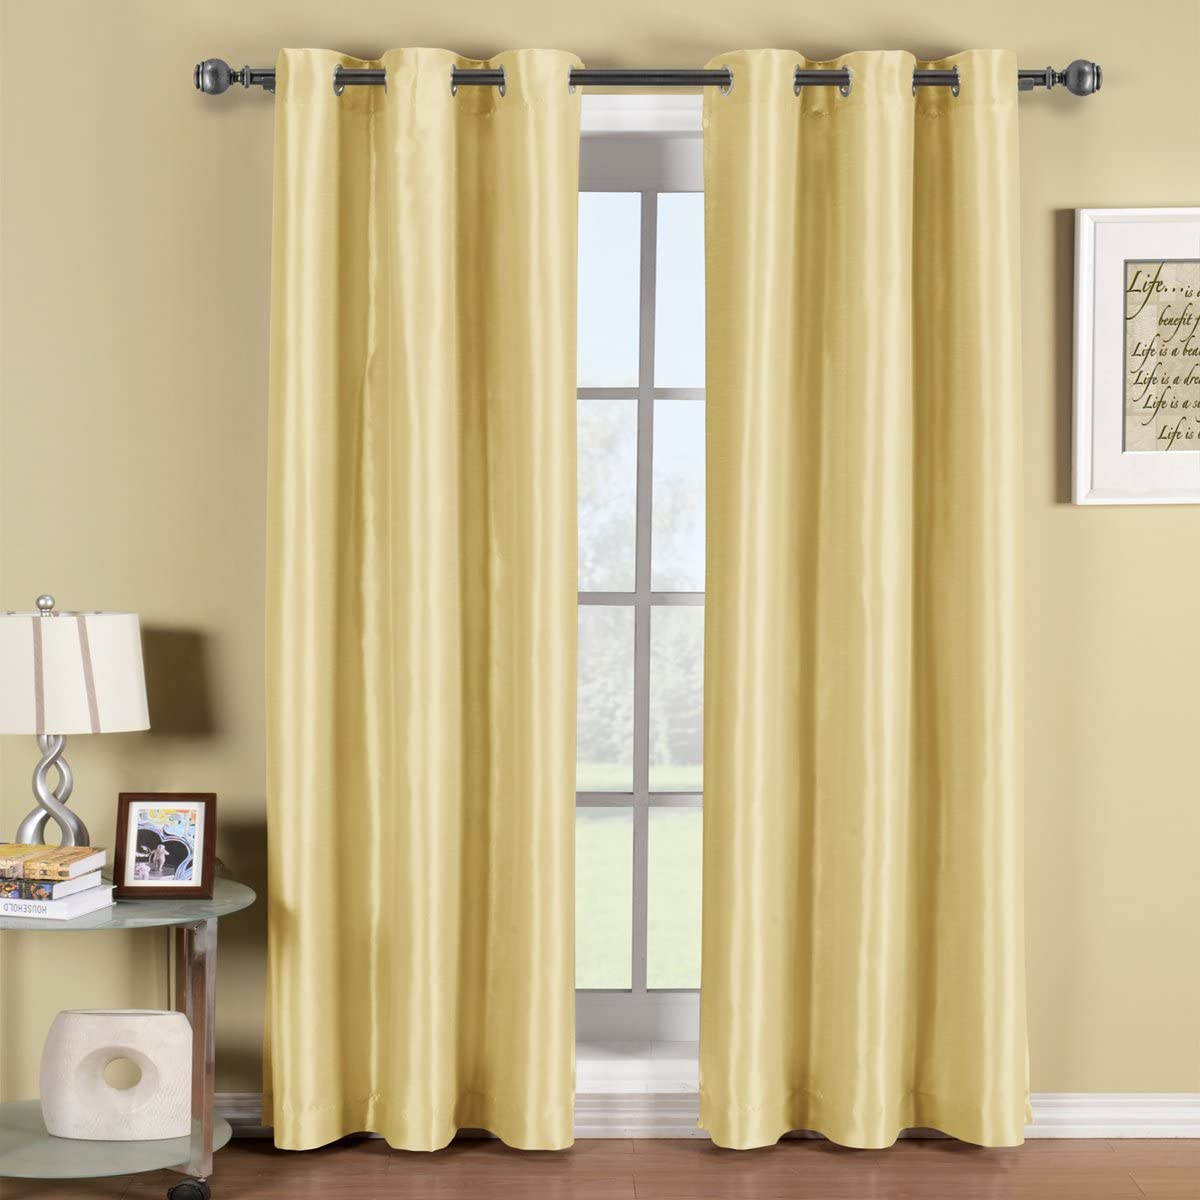 Soho Grommet Blackout Window Curtain Panel by Treasures25